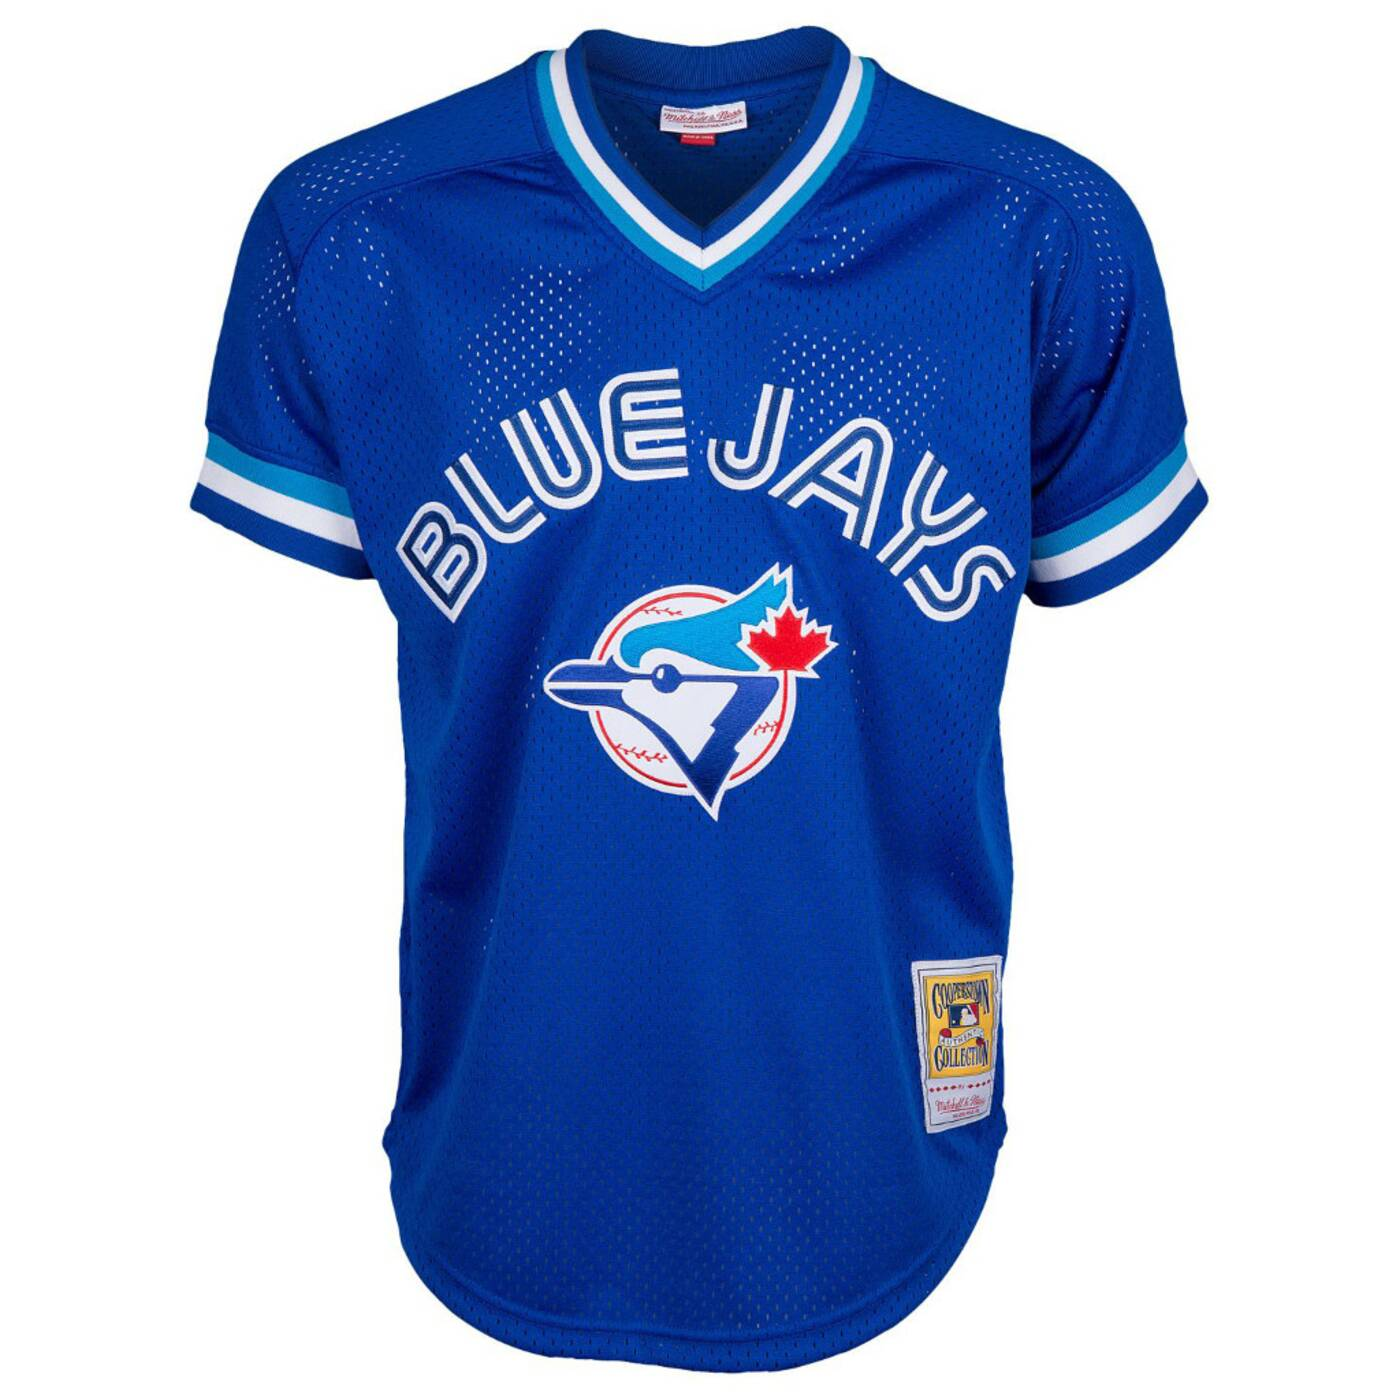 6e8ddeb4 Events in toronto: 10 stores to buy Blue Jays clothing in Toronto